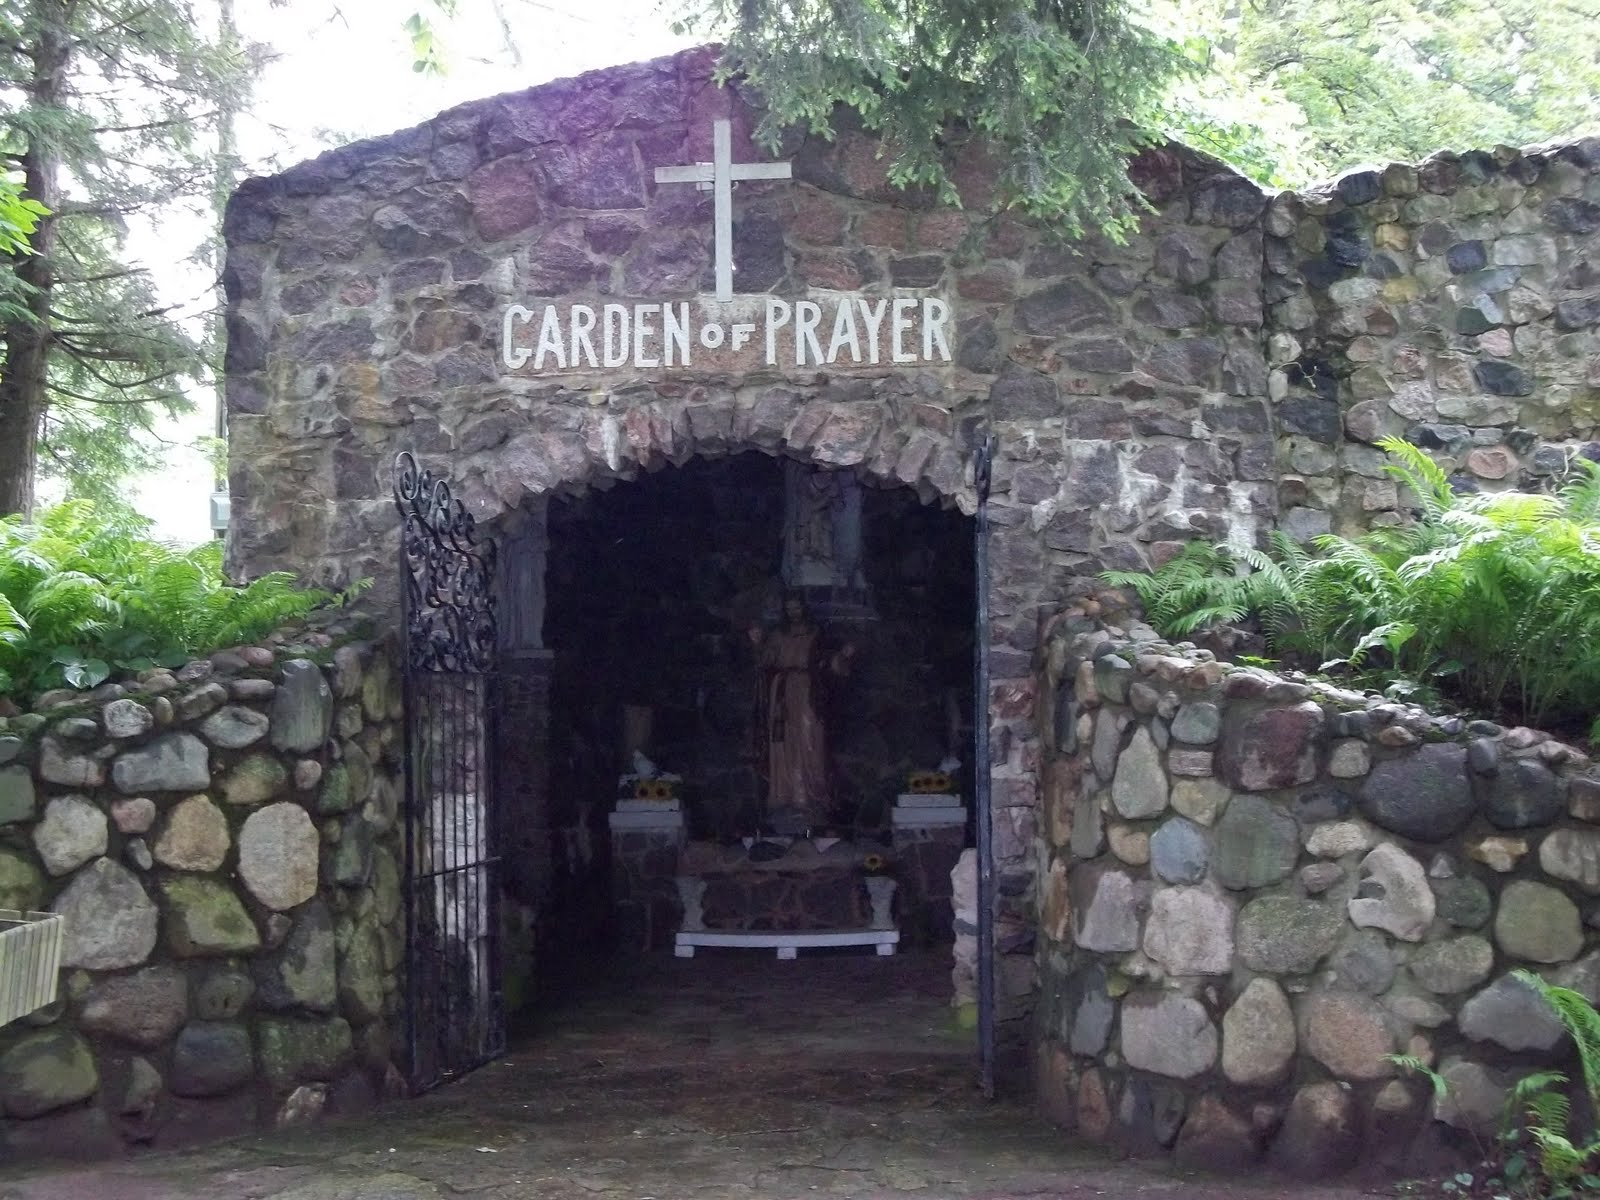 Garden of Prayer - Inside Camp Chesterfield